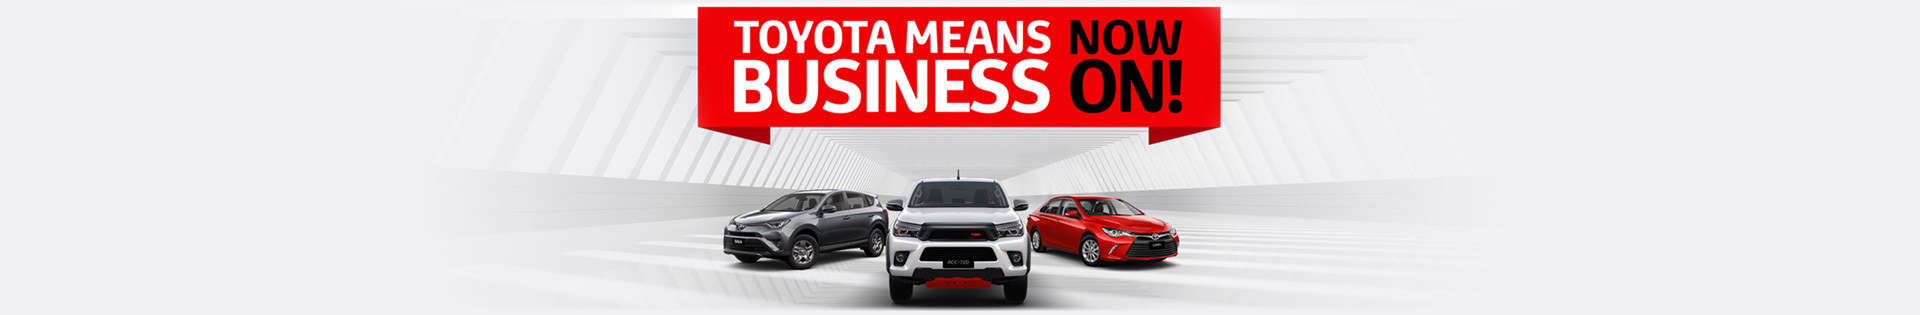 Toyota - National Offer - Special Offers & Great Value